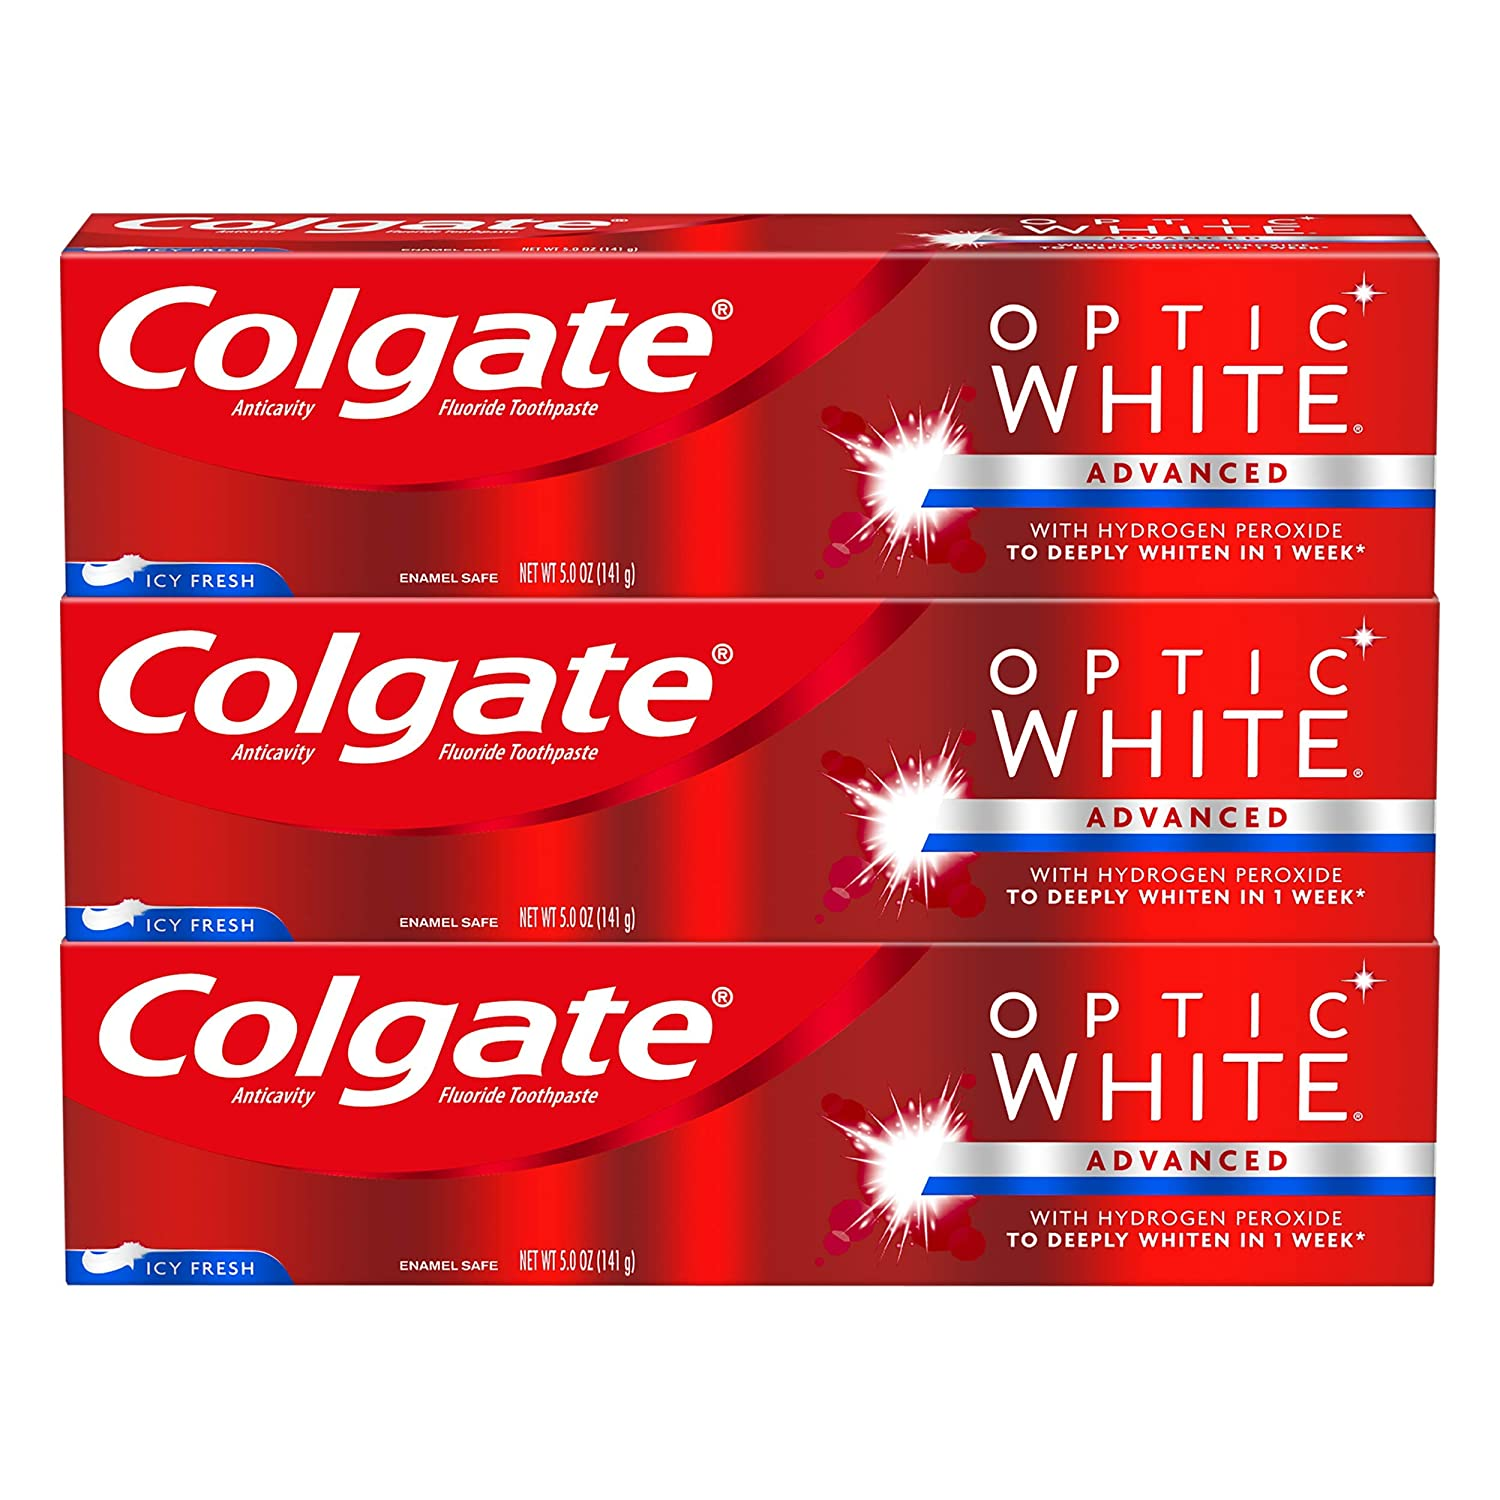 Colgate Optic White Whitening Toothpaste, Icy Fresh - 5.0 Ounce (Pack of 3)